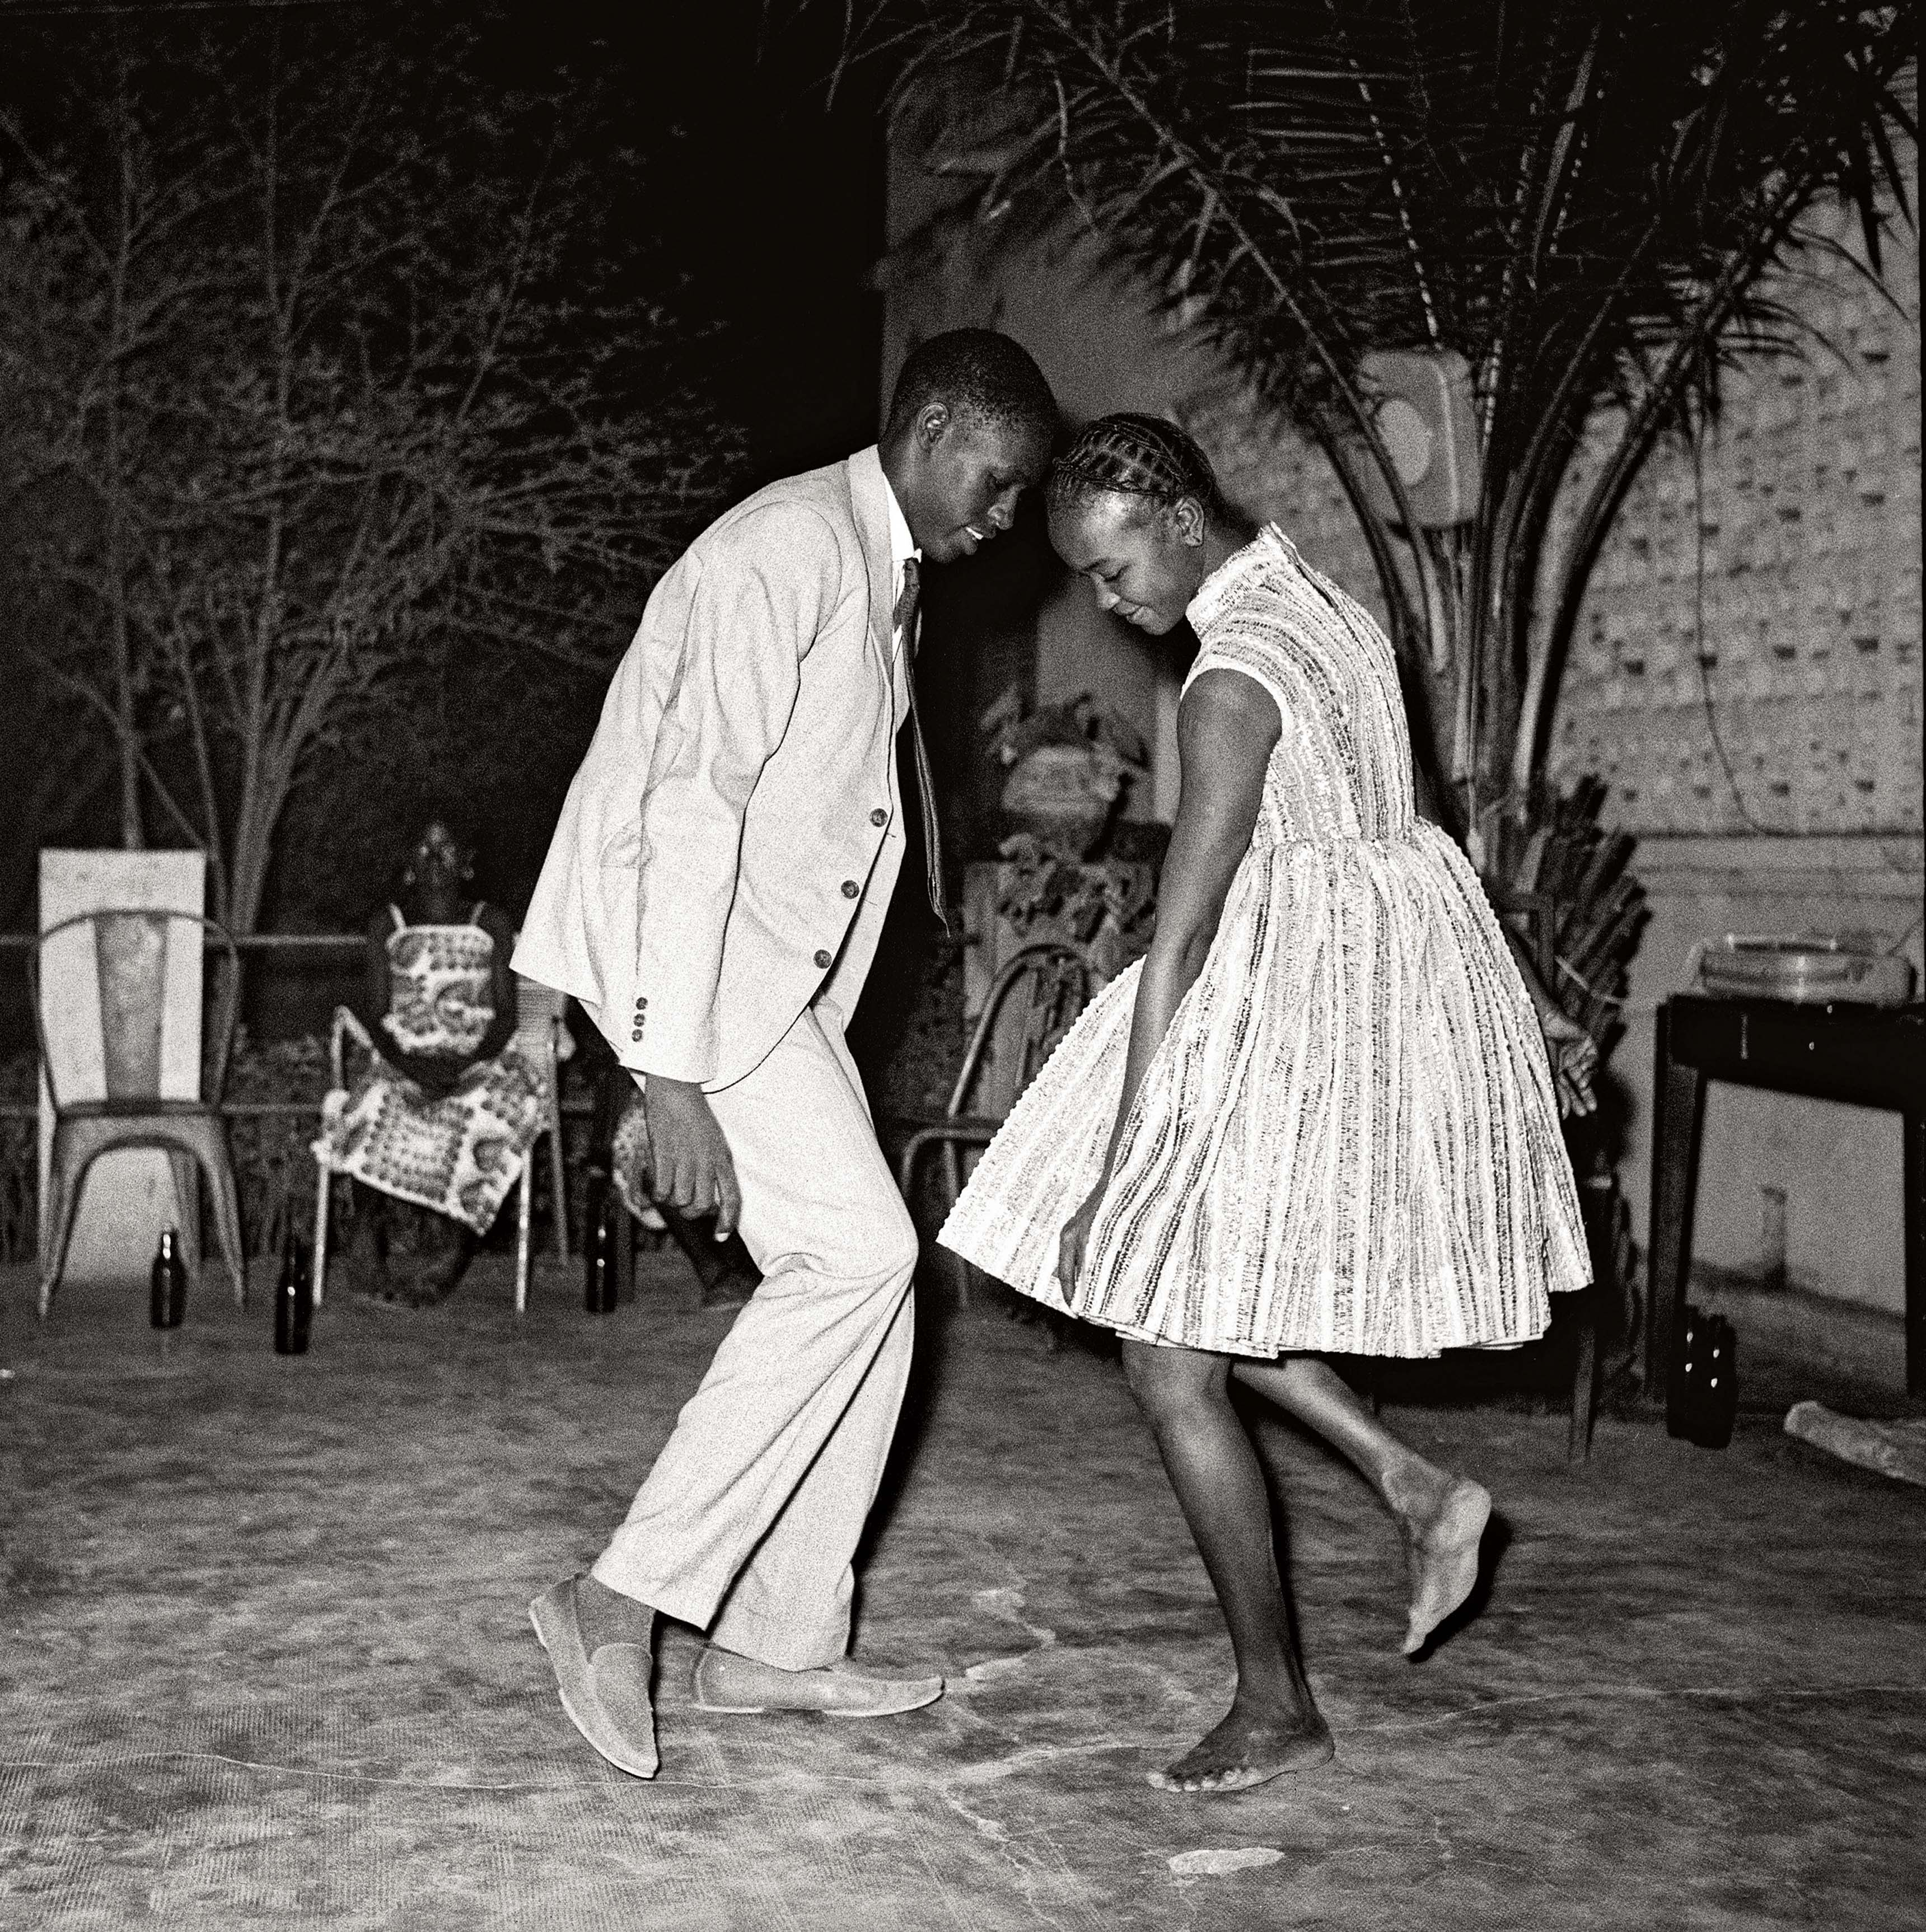 Malick Sidibé Nuit de Noël, 1963 Tirage gélatino-argentique 100,5 x 100 cm Collection Fondation Cartier pour l'art contemporain, Paris © Malick Sidibé